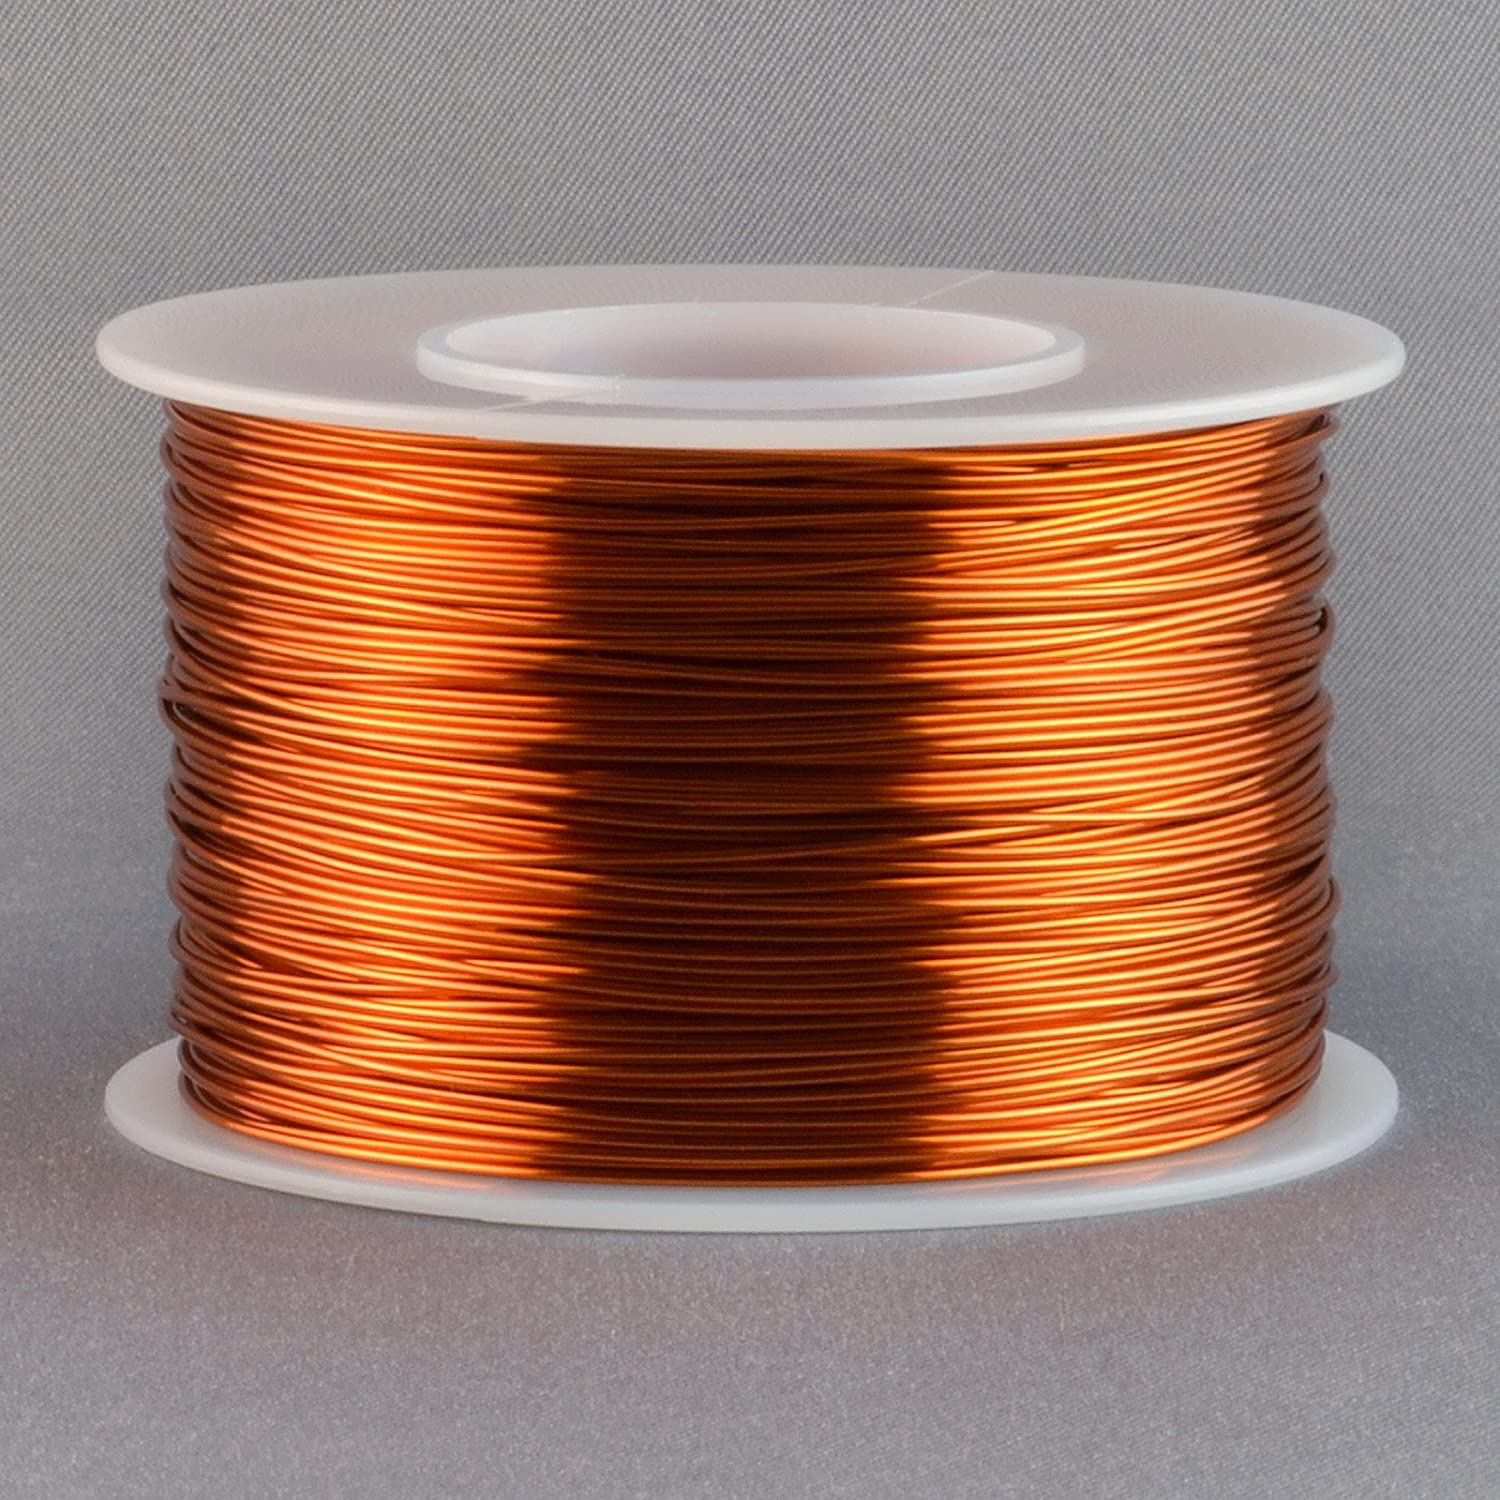 metallic wire coil with silkworm 221